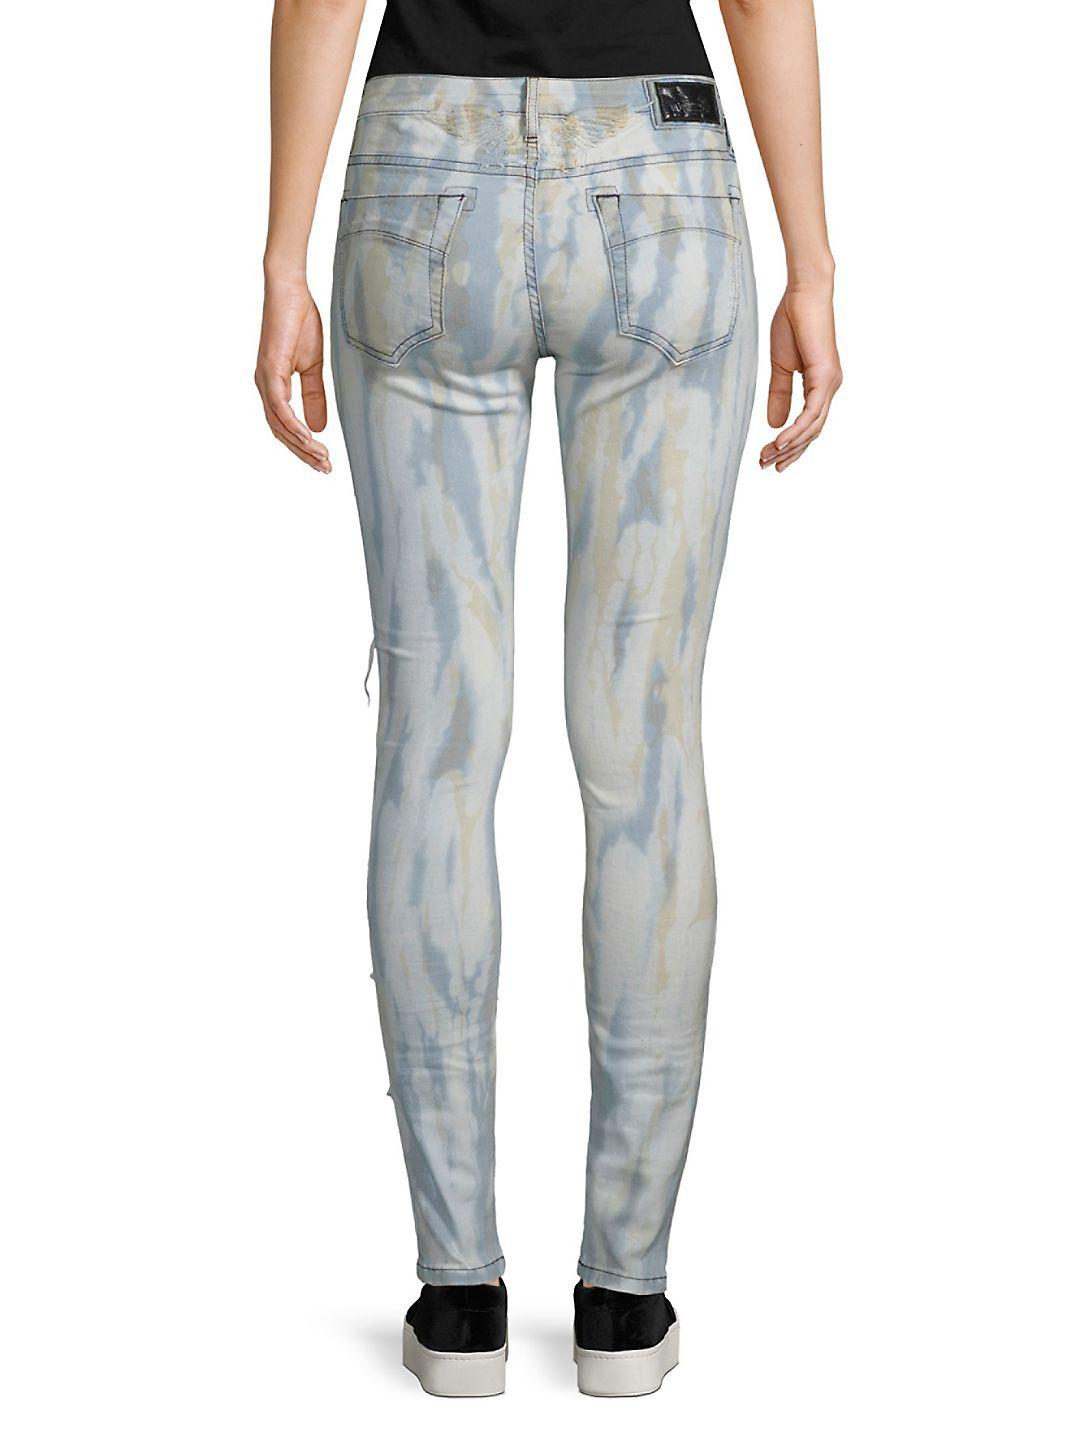 Robin's Jean Denim Florence Distressed Skinny Jeans in Blue